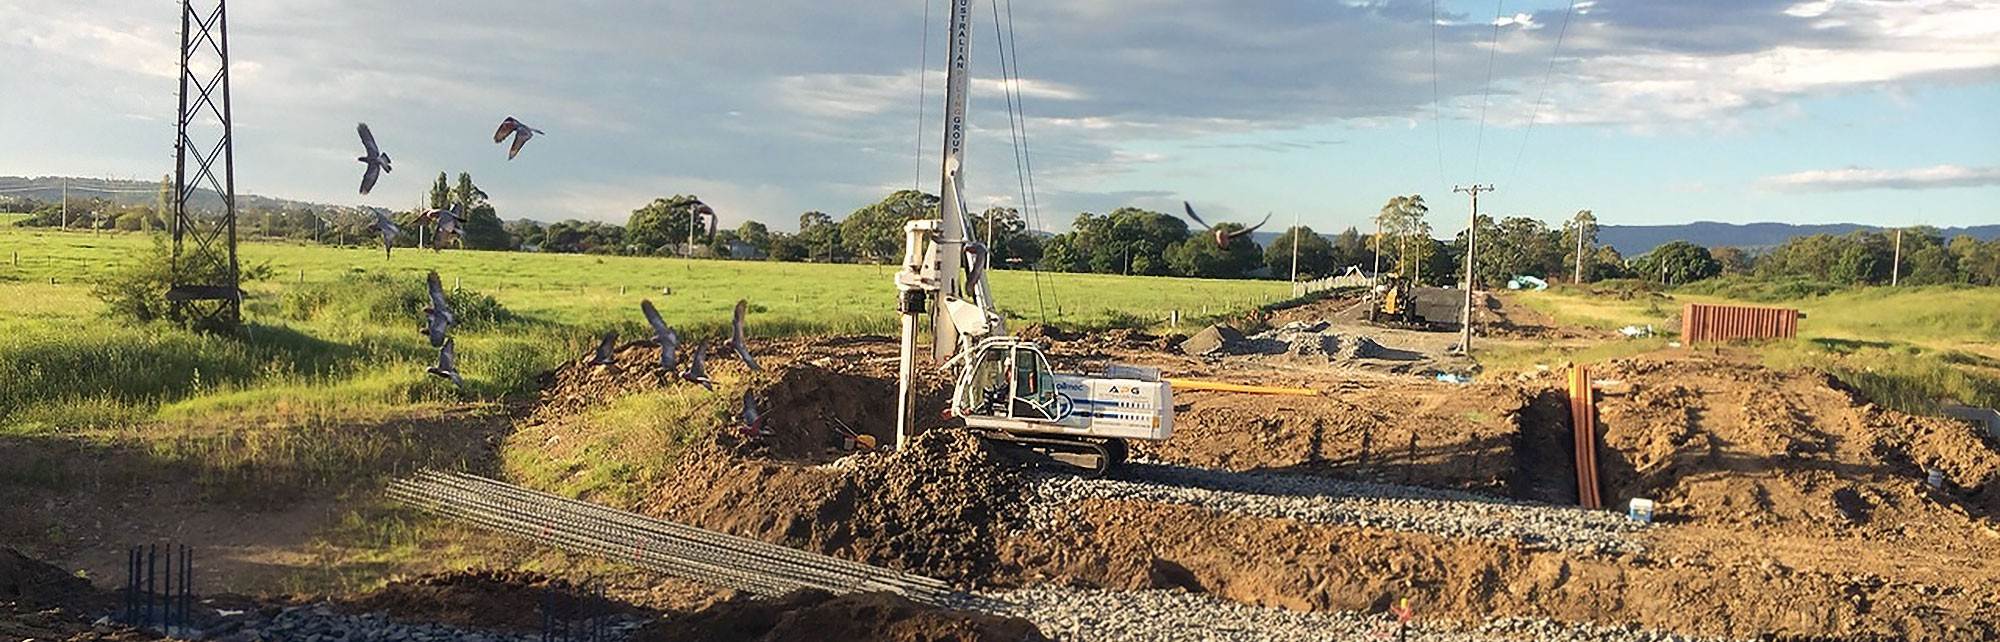 Australian Piling Group - Piling, Excavation, Shotcreting and